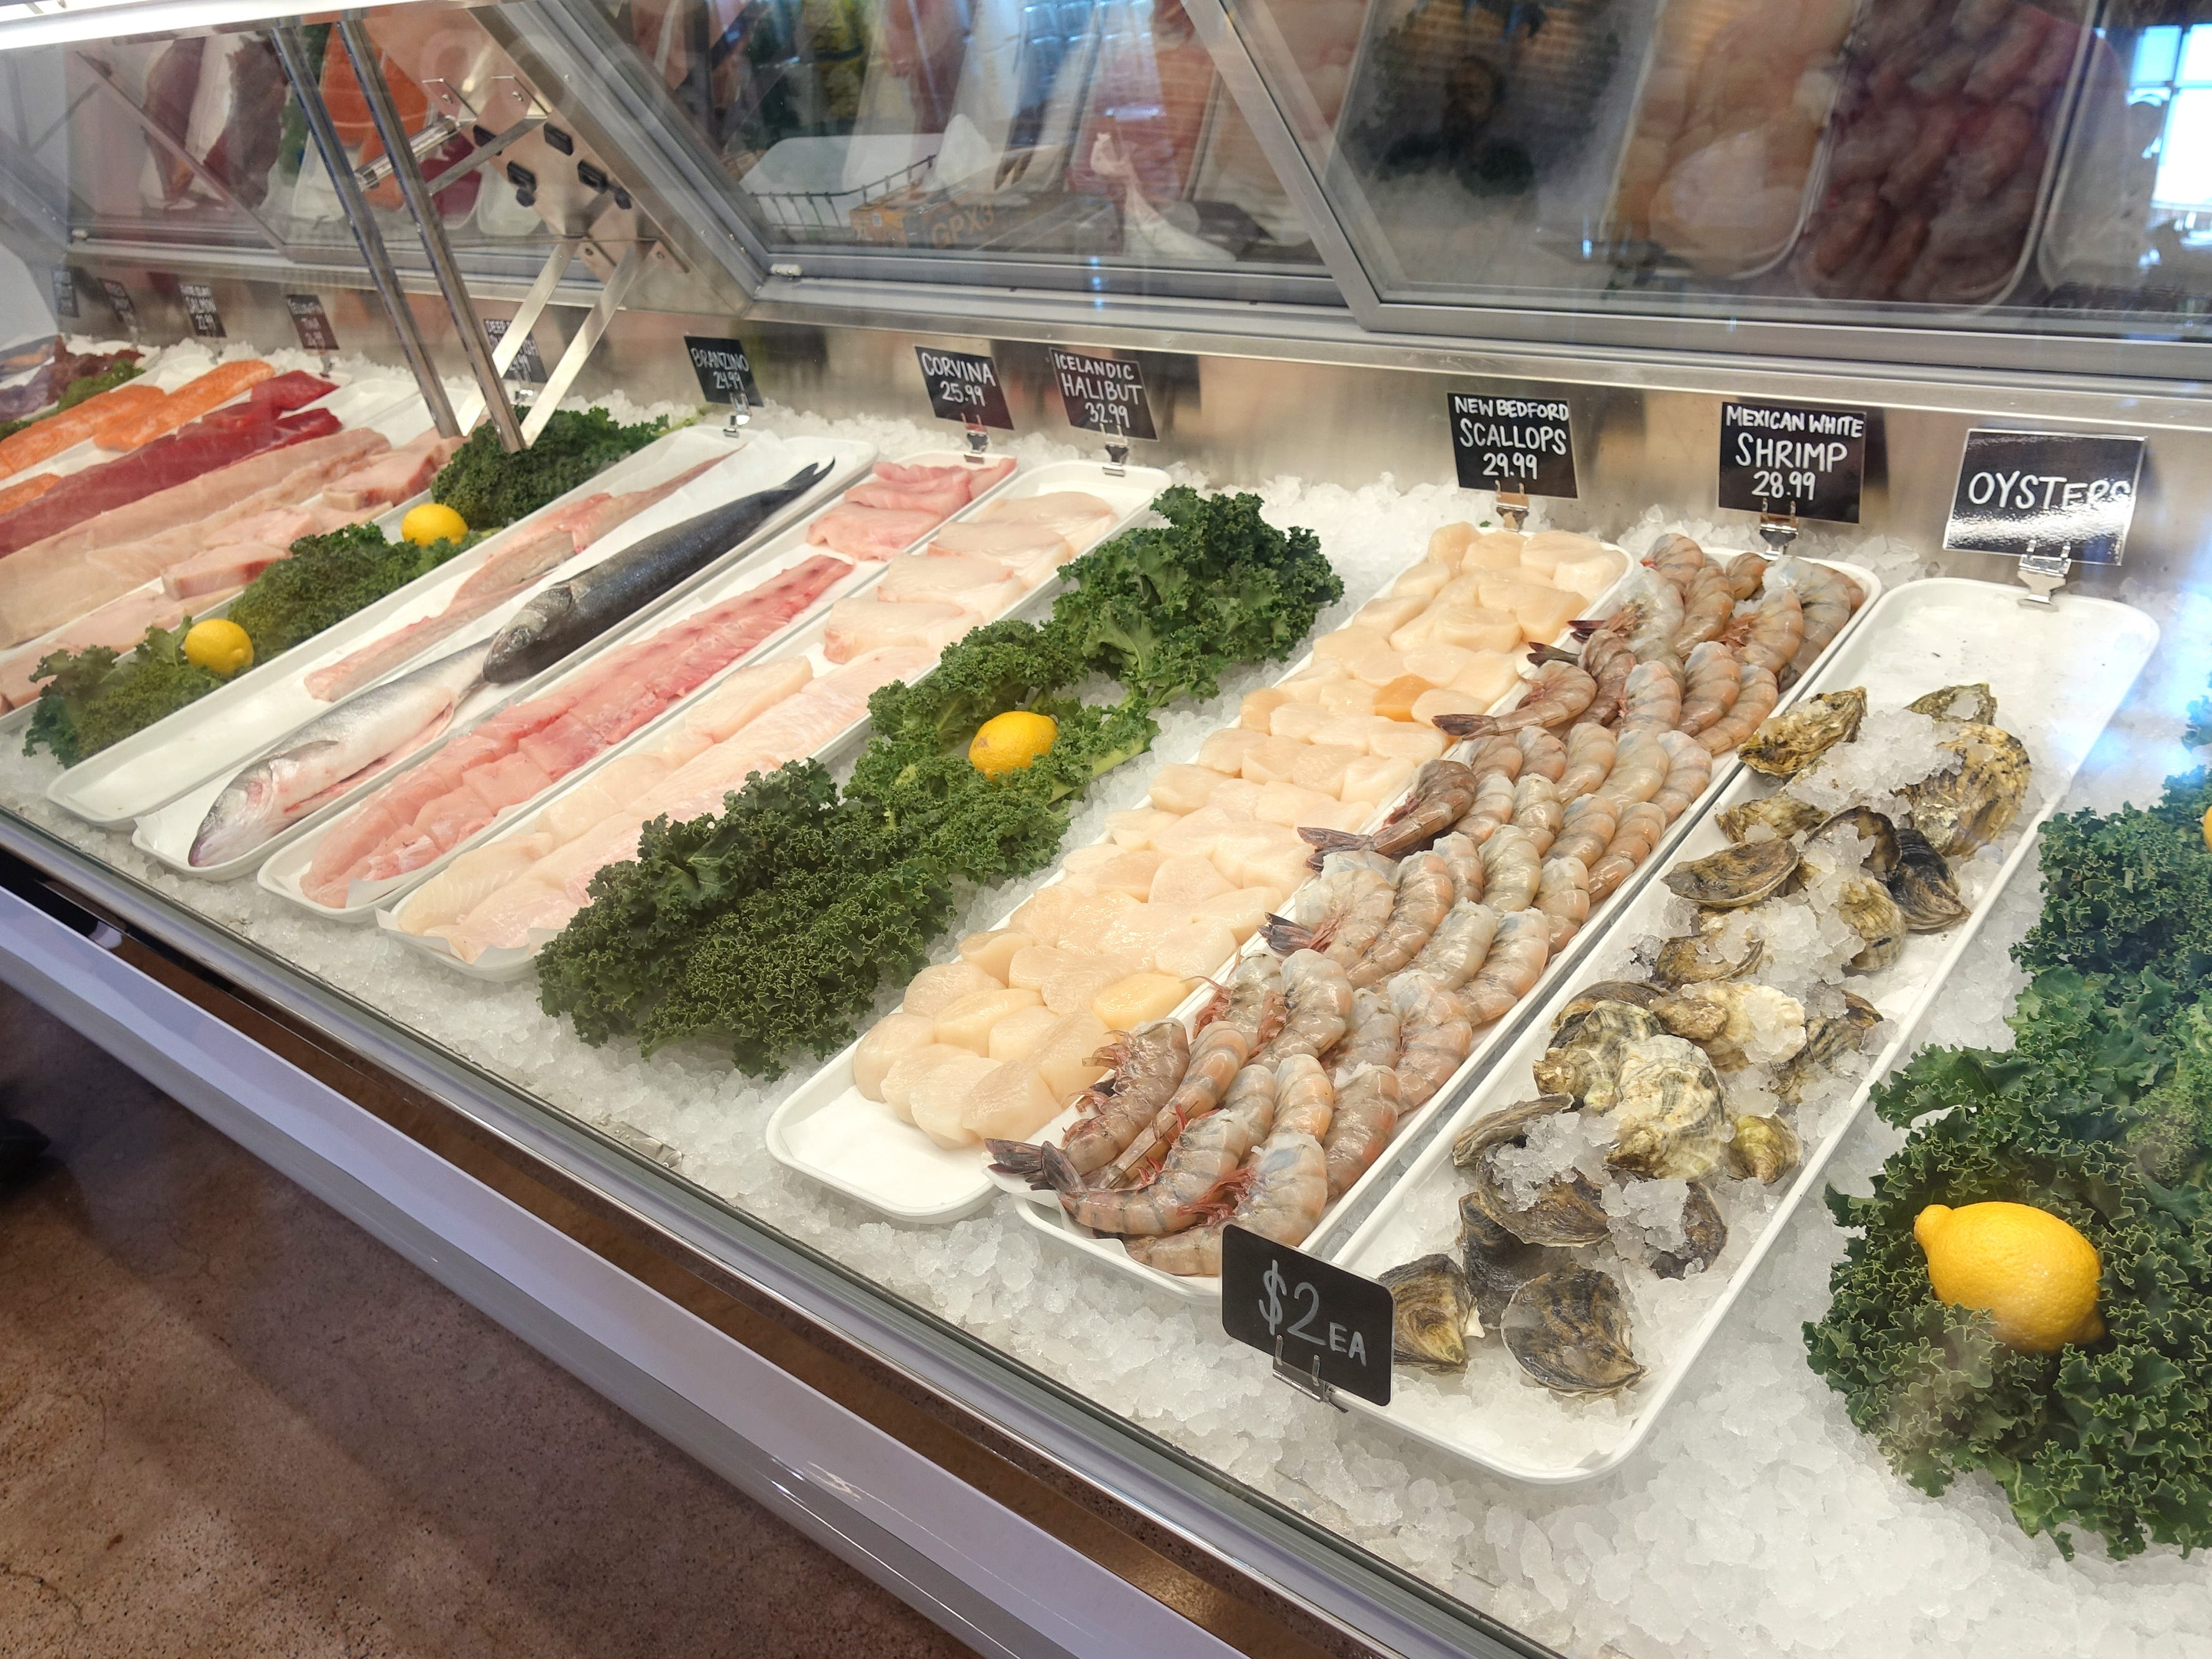 The seafood case at Chula Seafood Uptown in Phoenix.